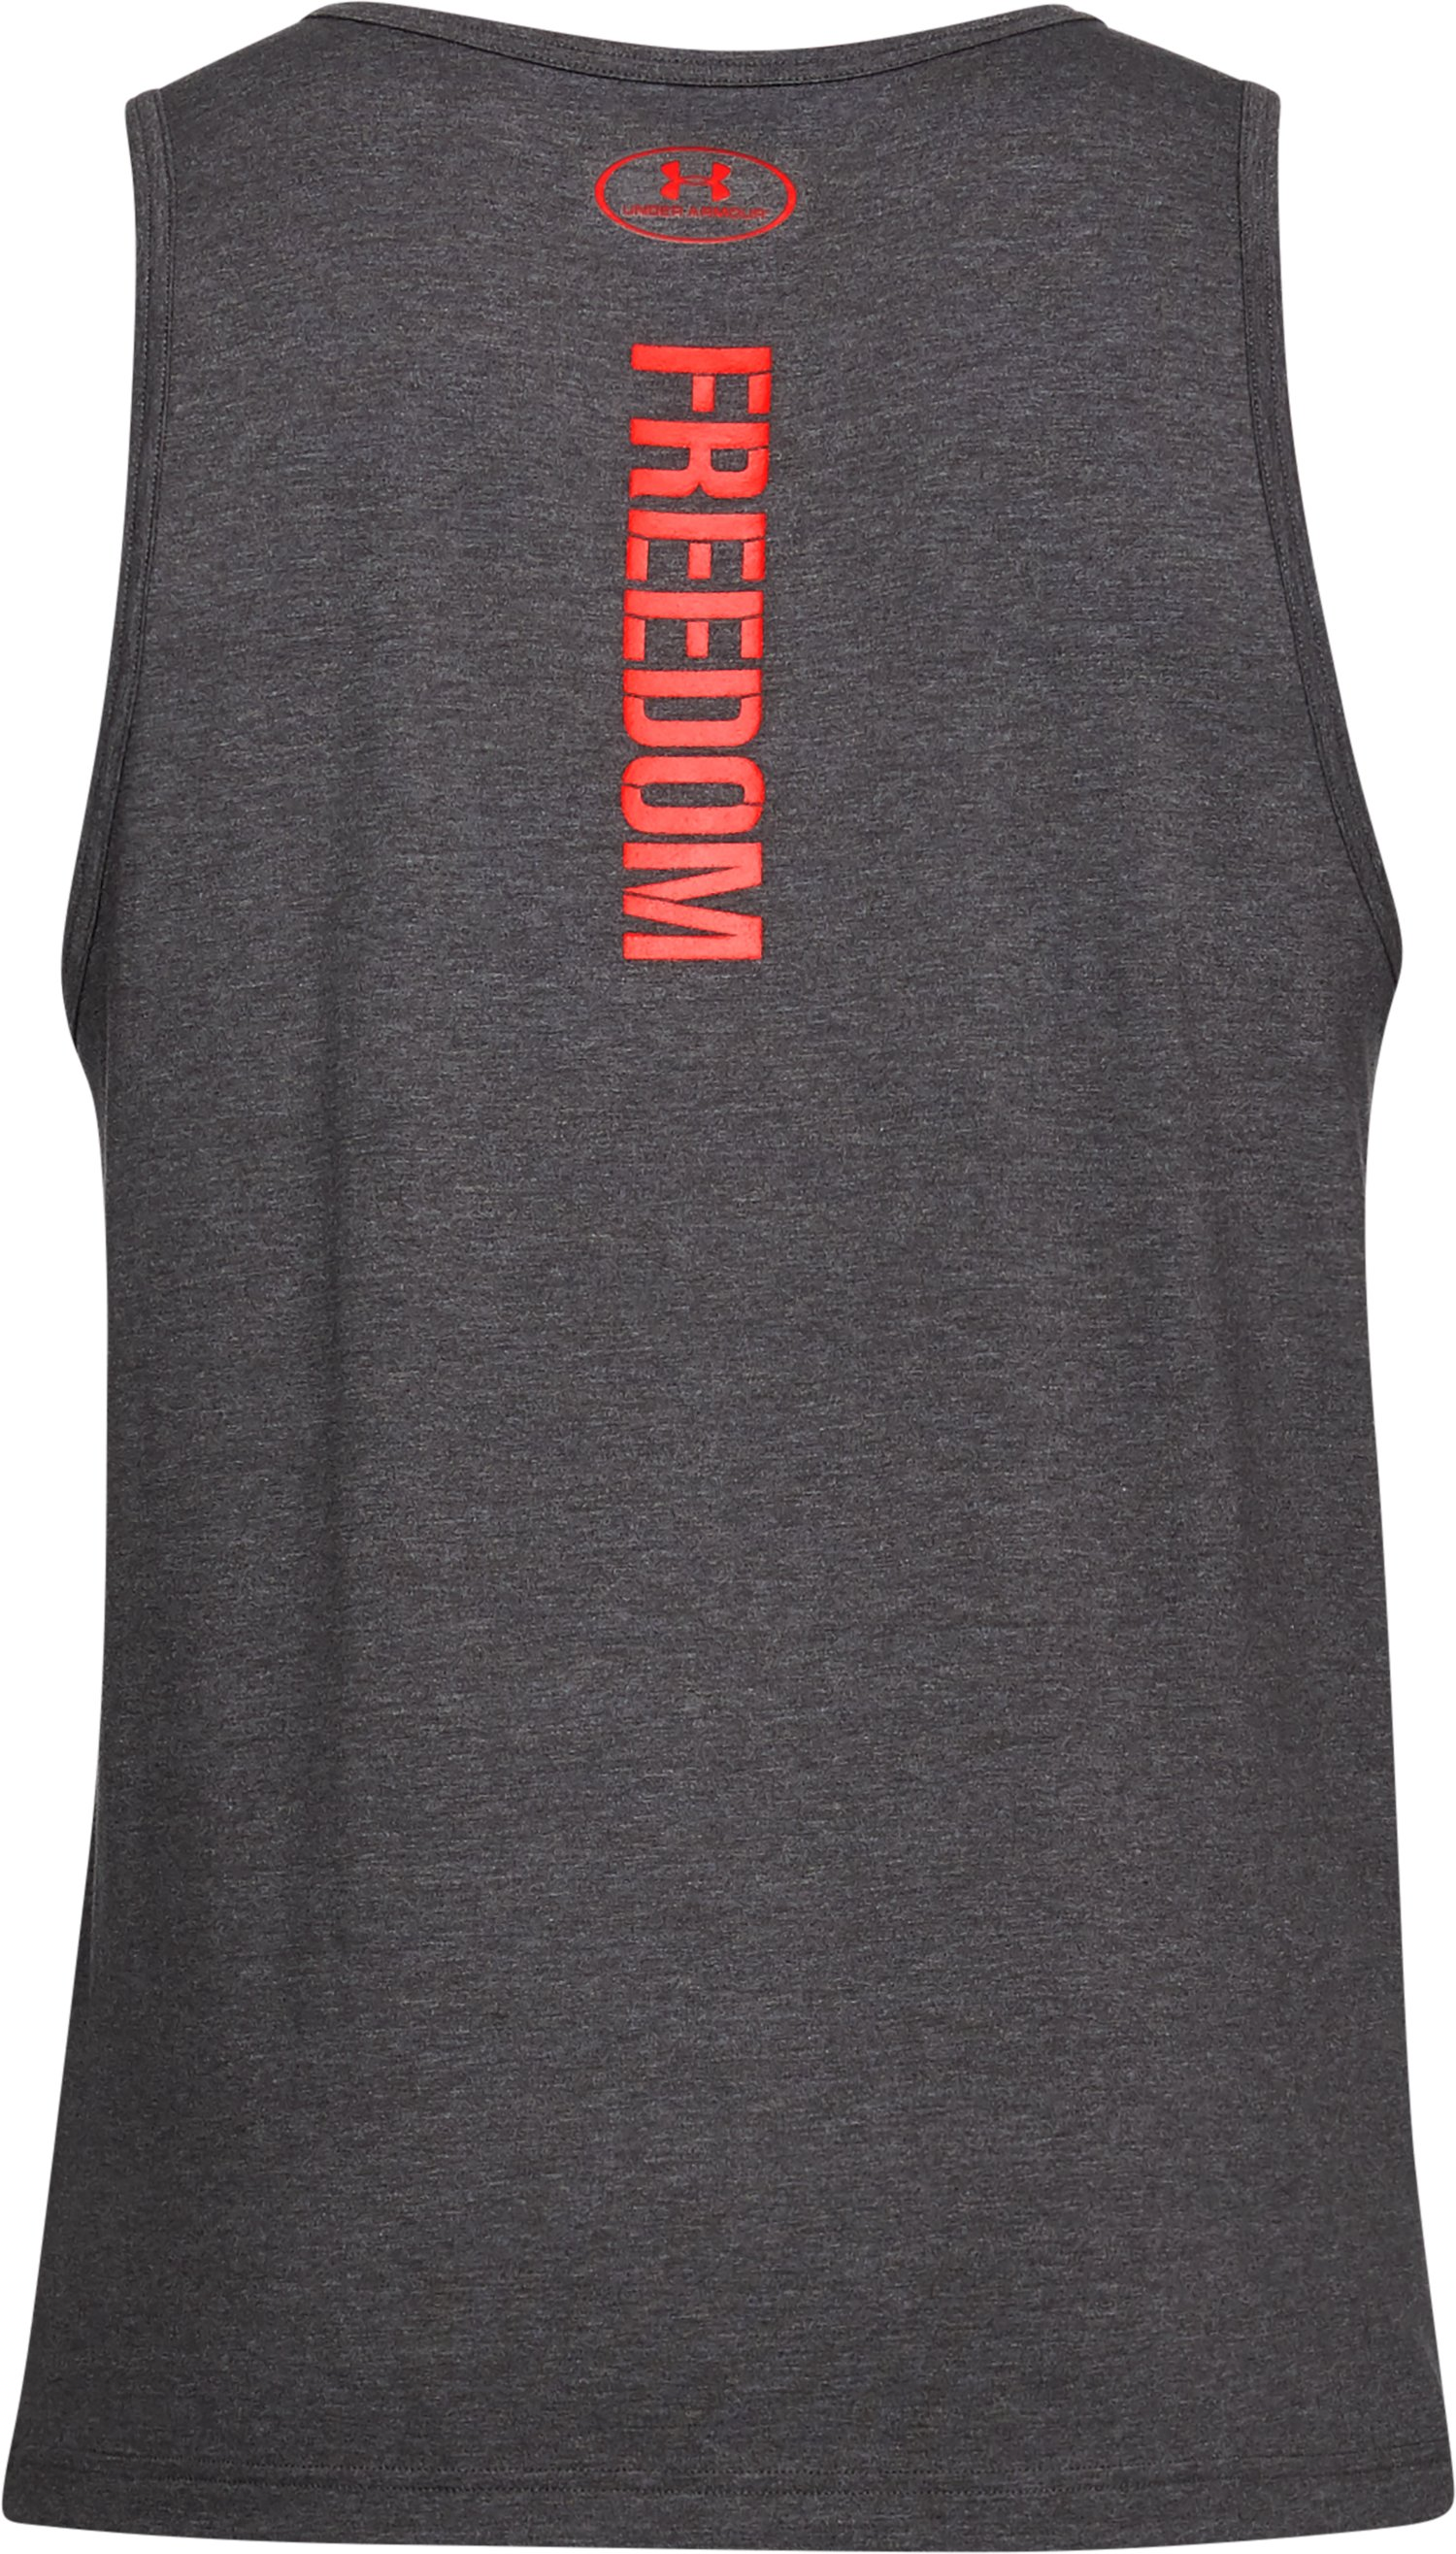 Men's UA Freedom Eagle Tank, CHARCOAL MEDIUM HEATHER, undefined